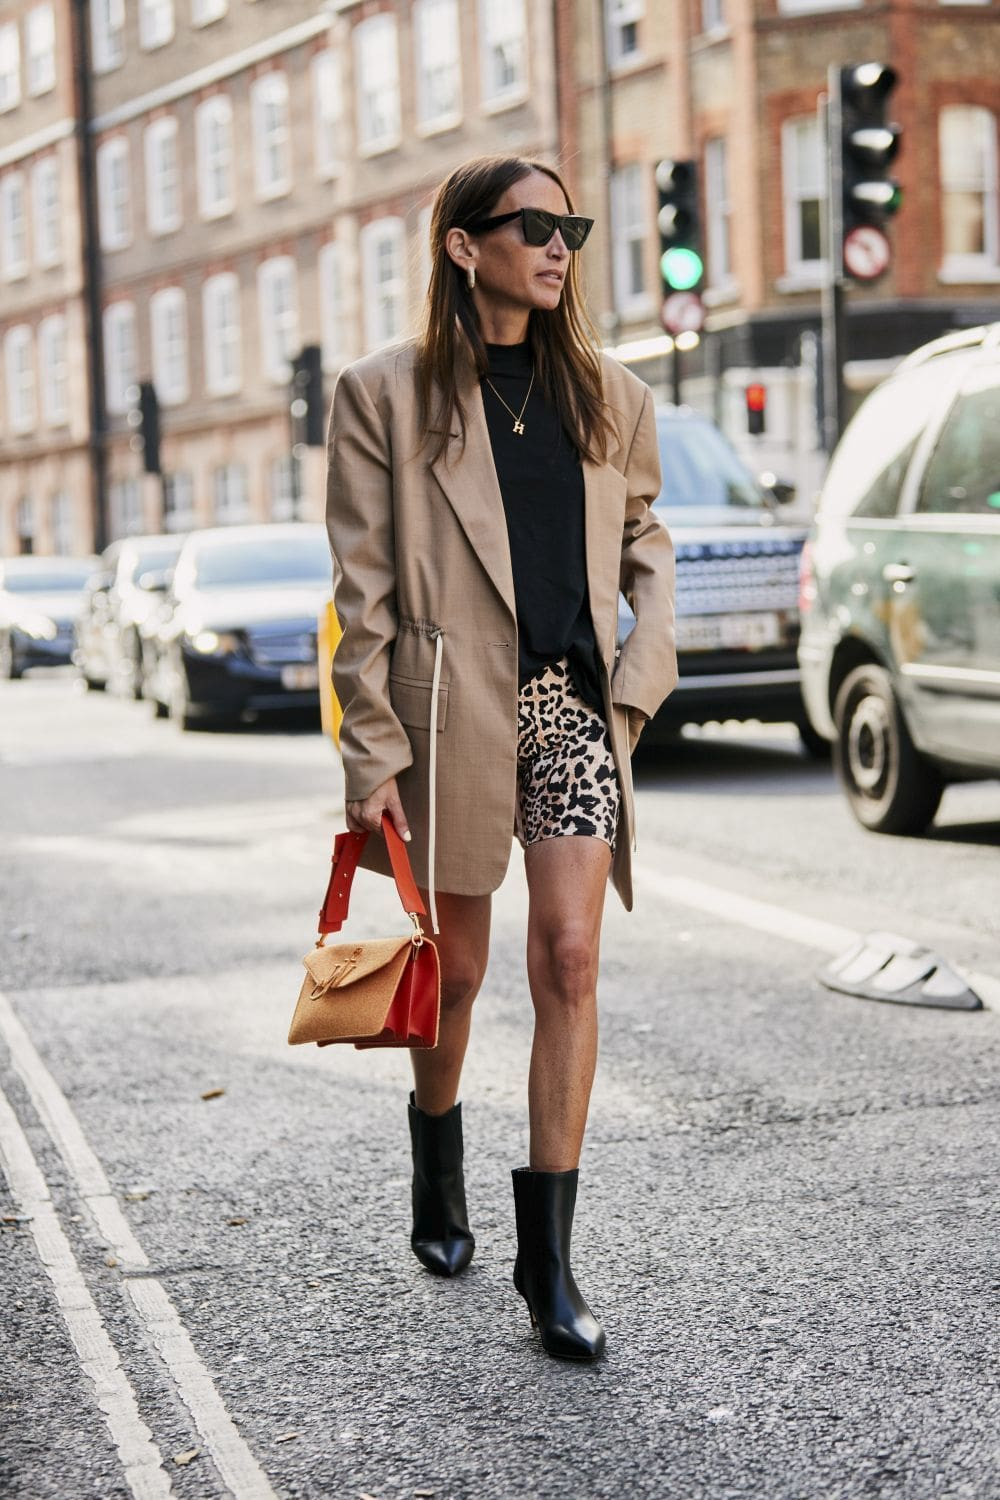 Beige with animal print winter style